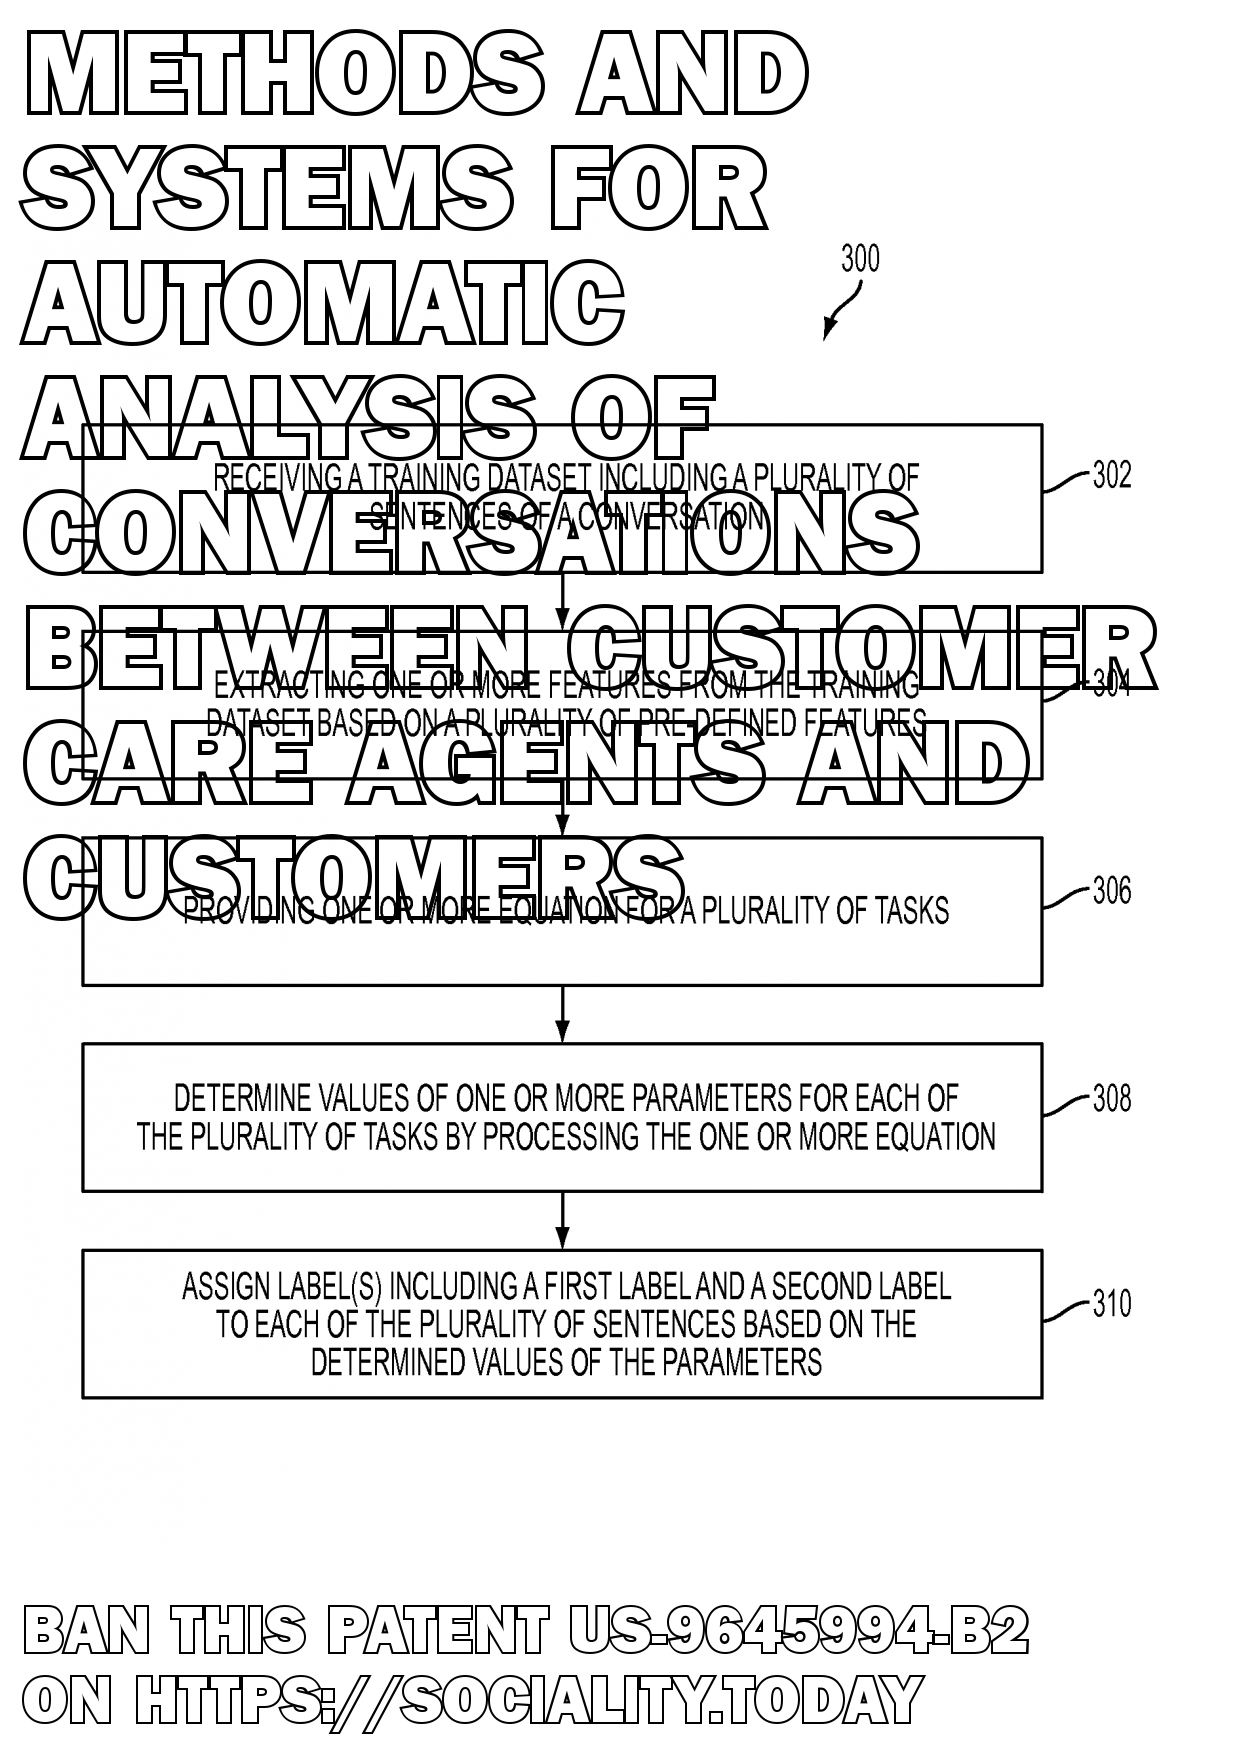 Methods and systems for automatic analysis of conversations between customer care agents and customers  - US-9645994-B2